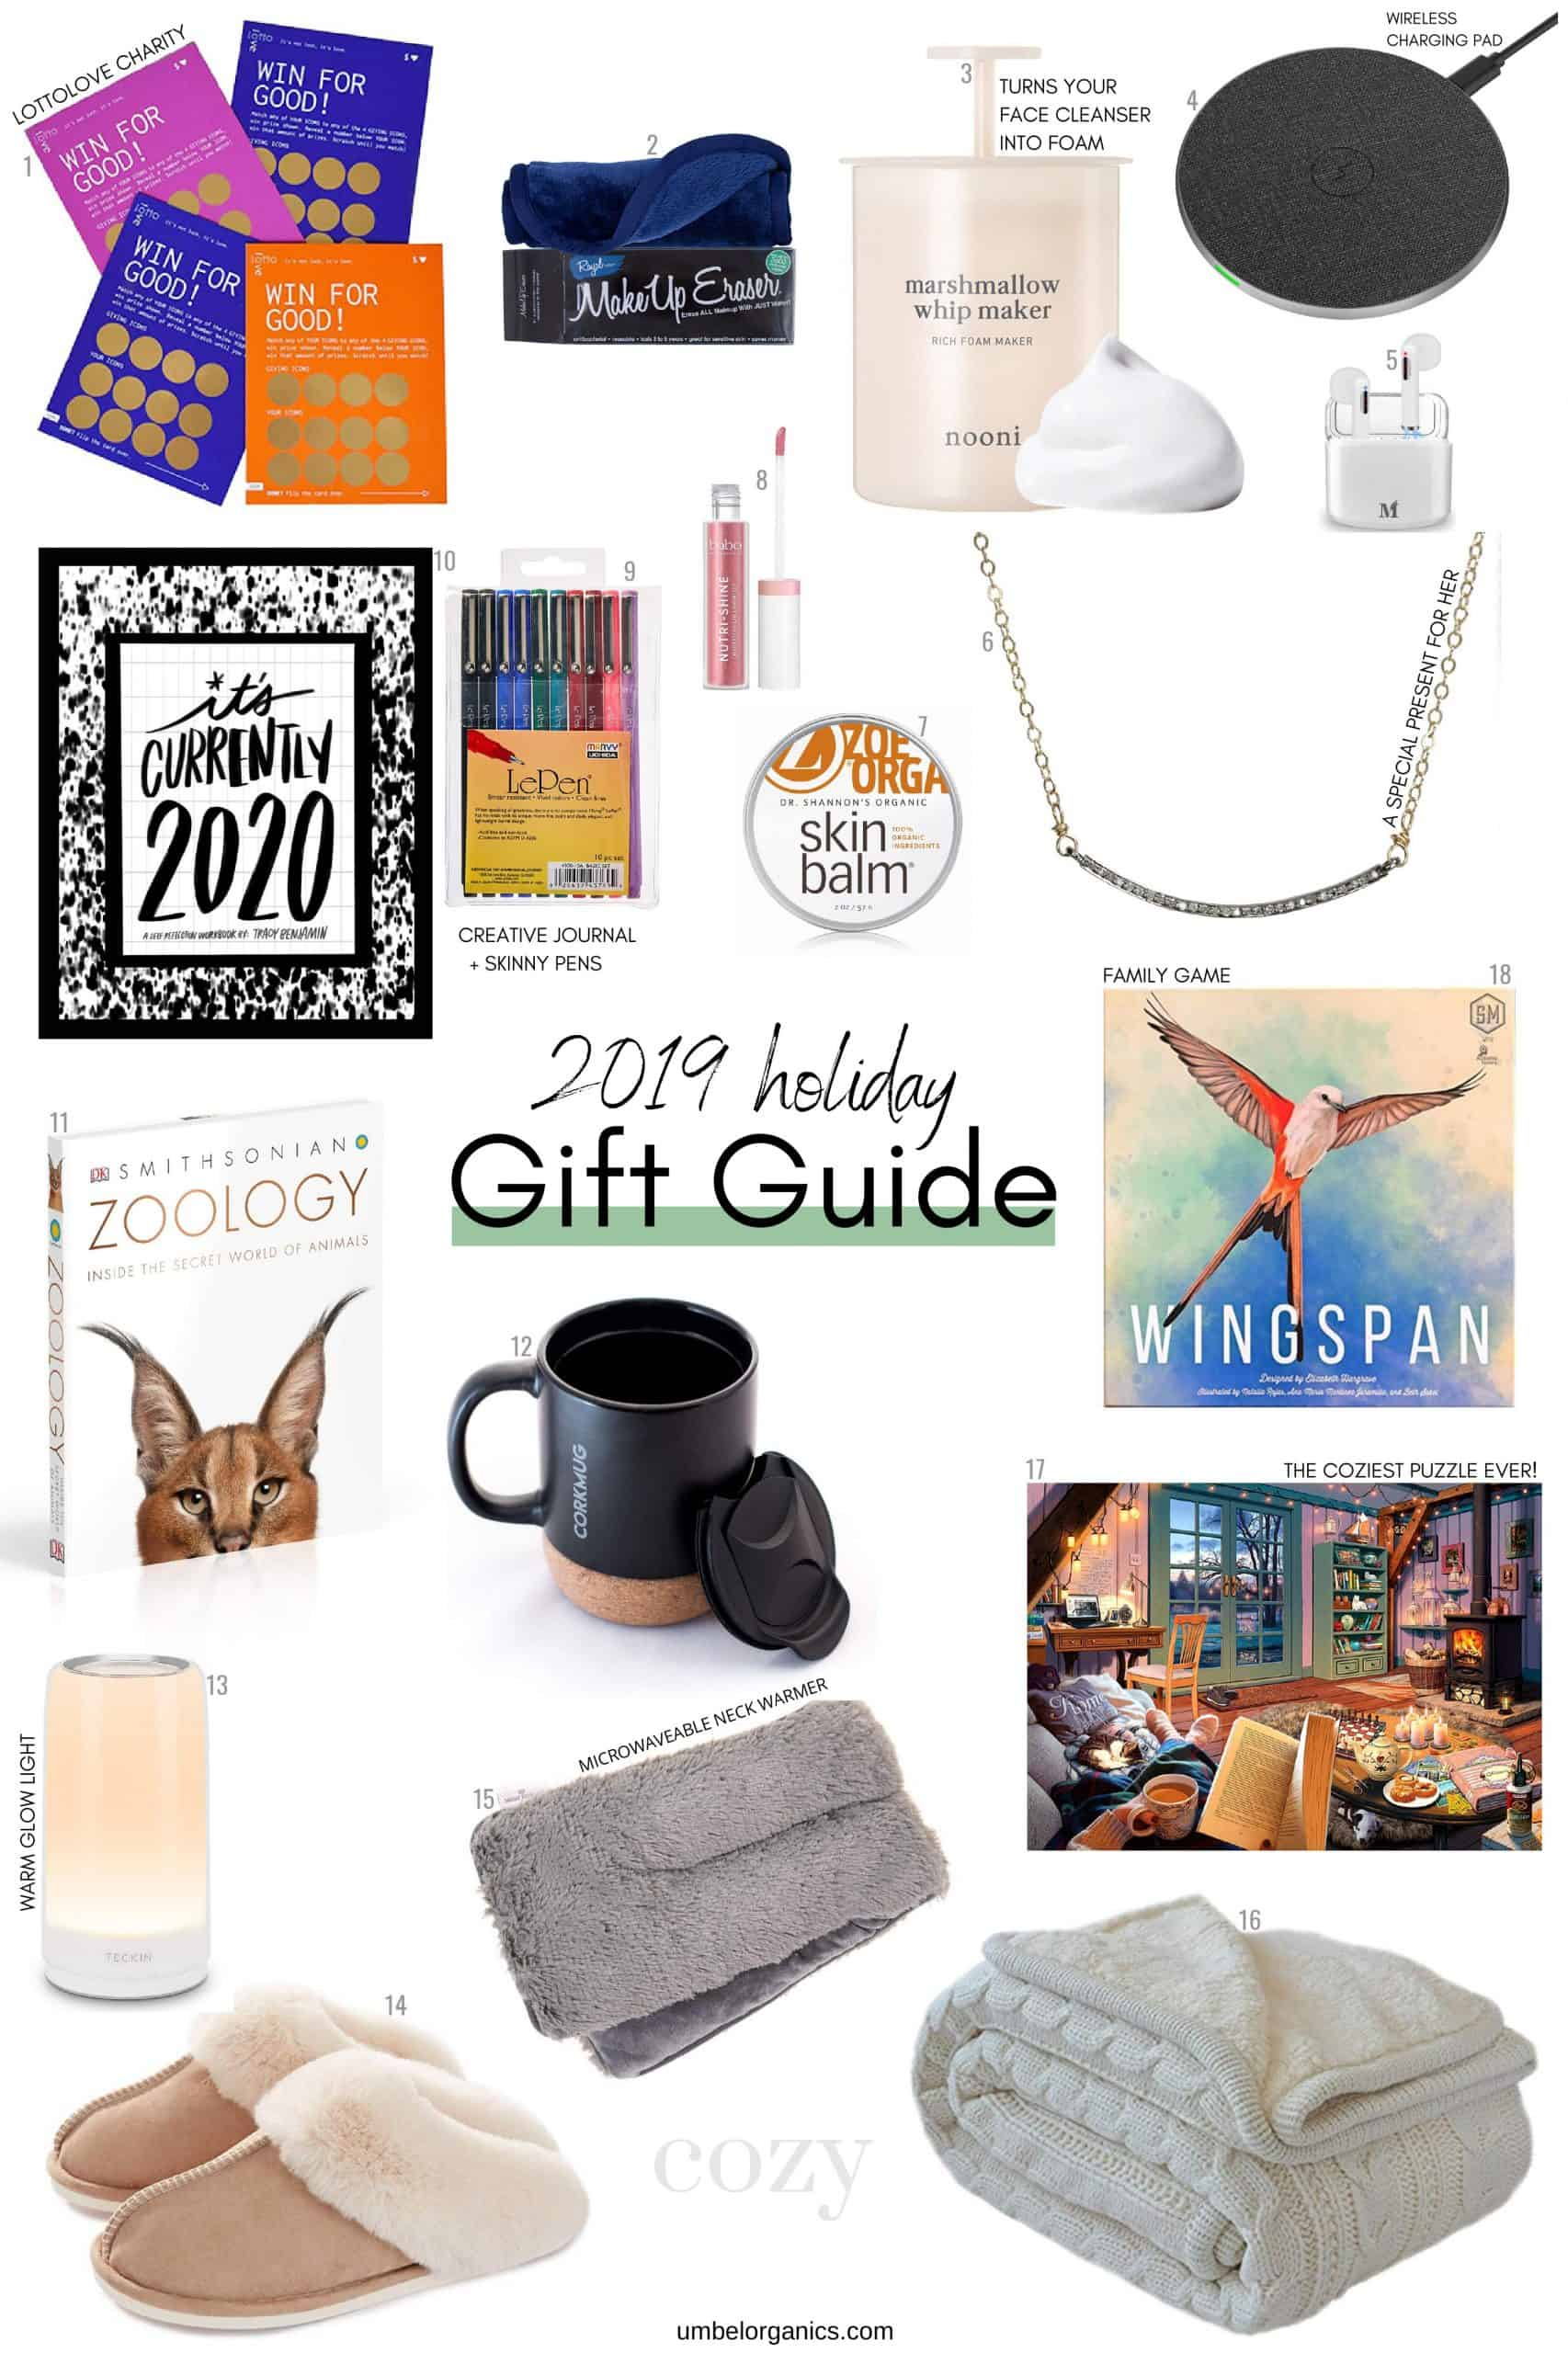 Holiday gift guide for family